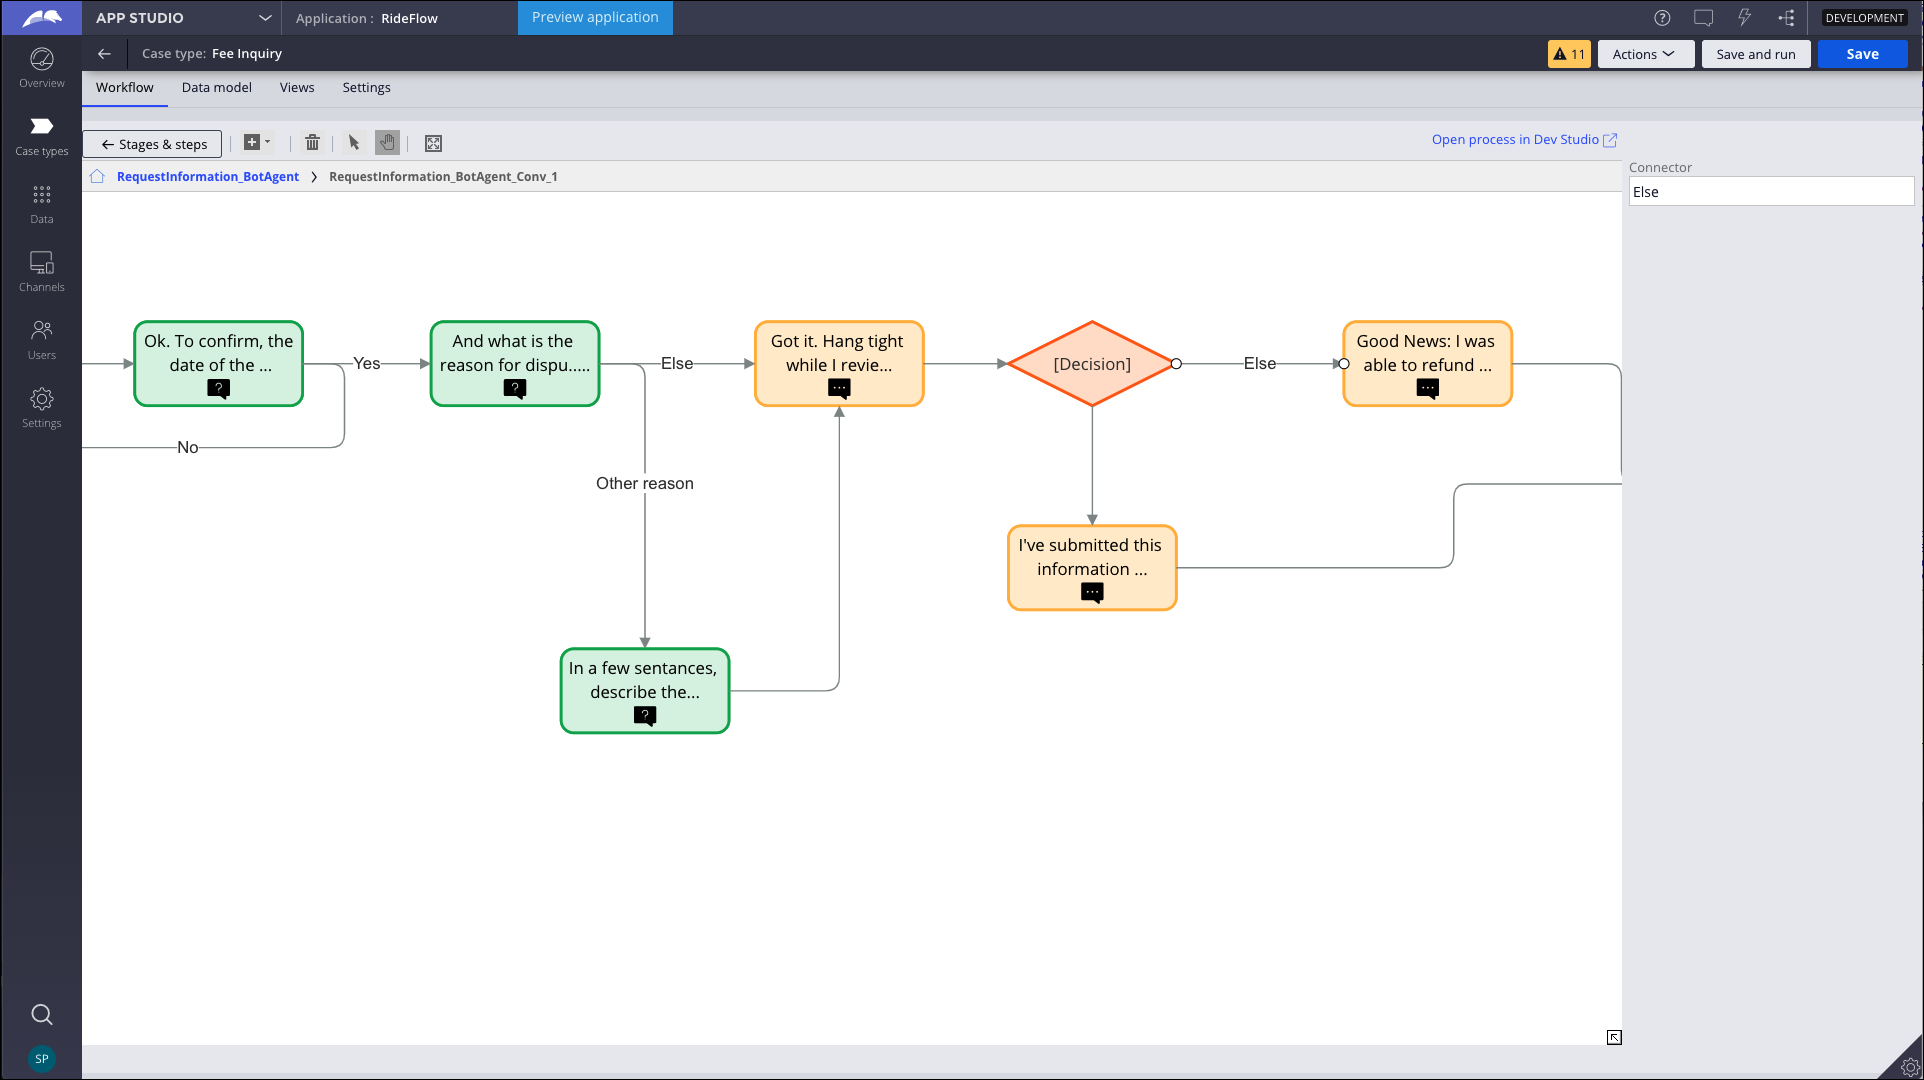 IVA flows authoring tool